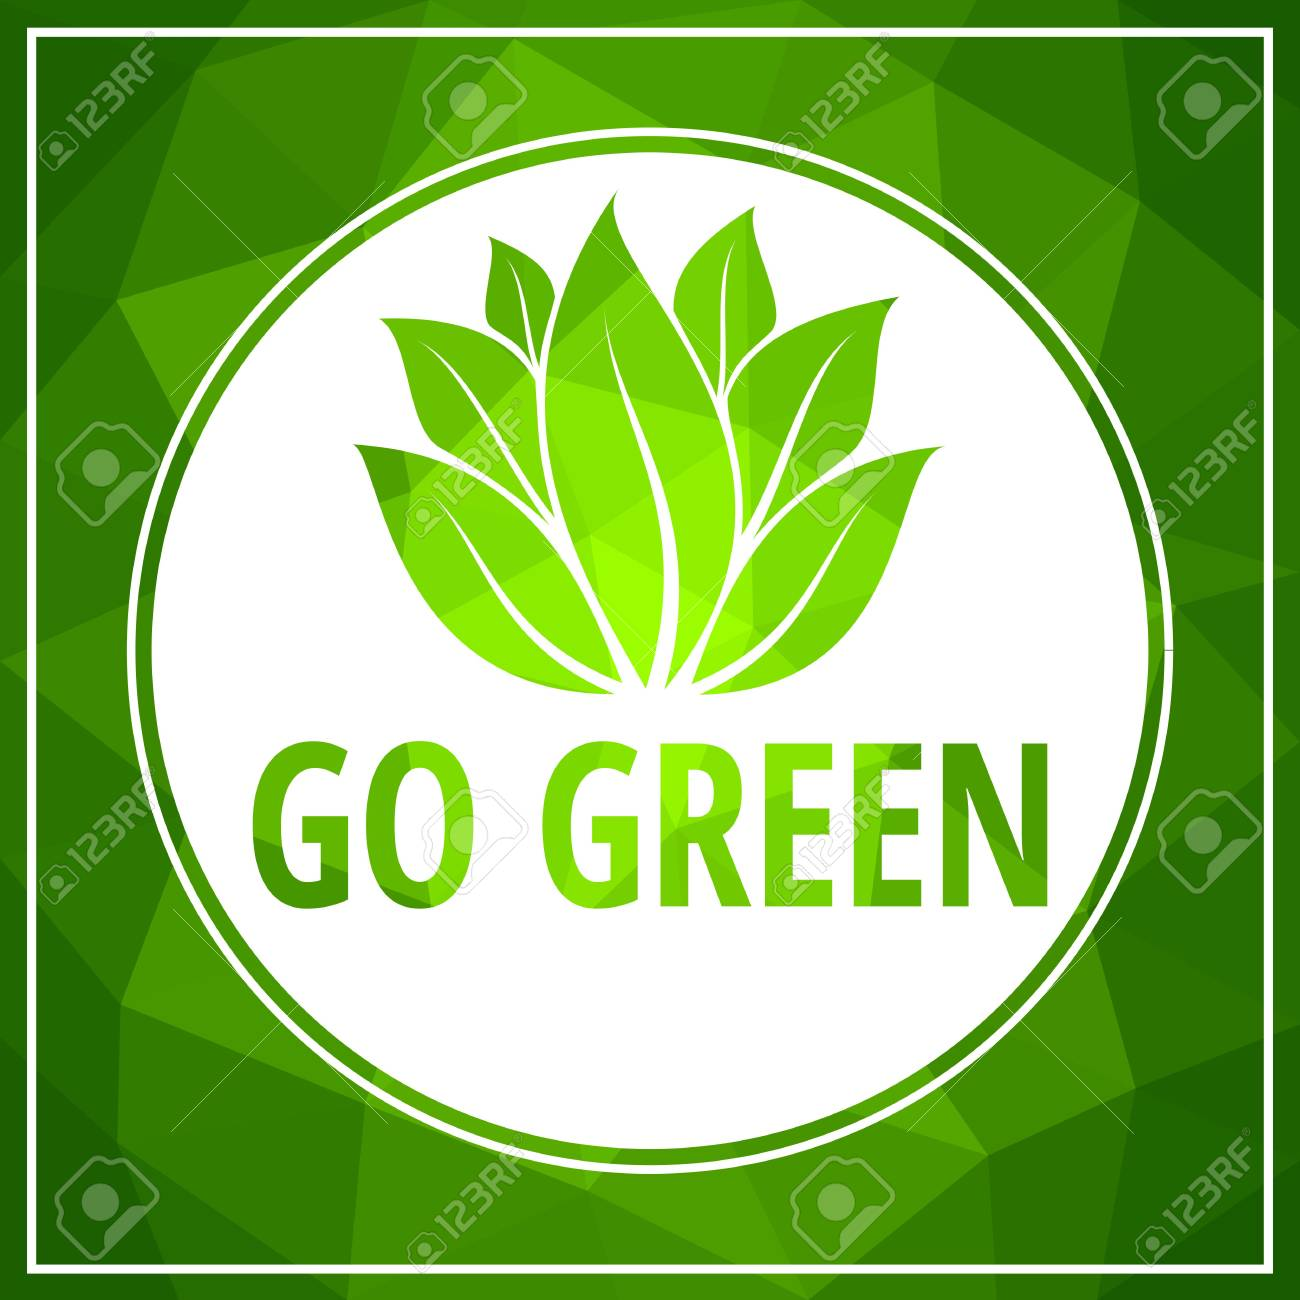 Go green icon green leaf vector illustration isolated on white - 97575234